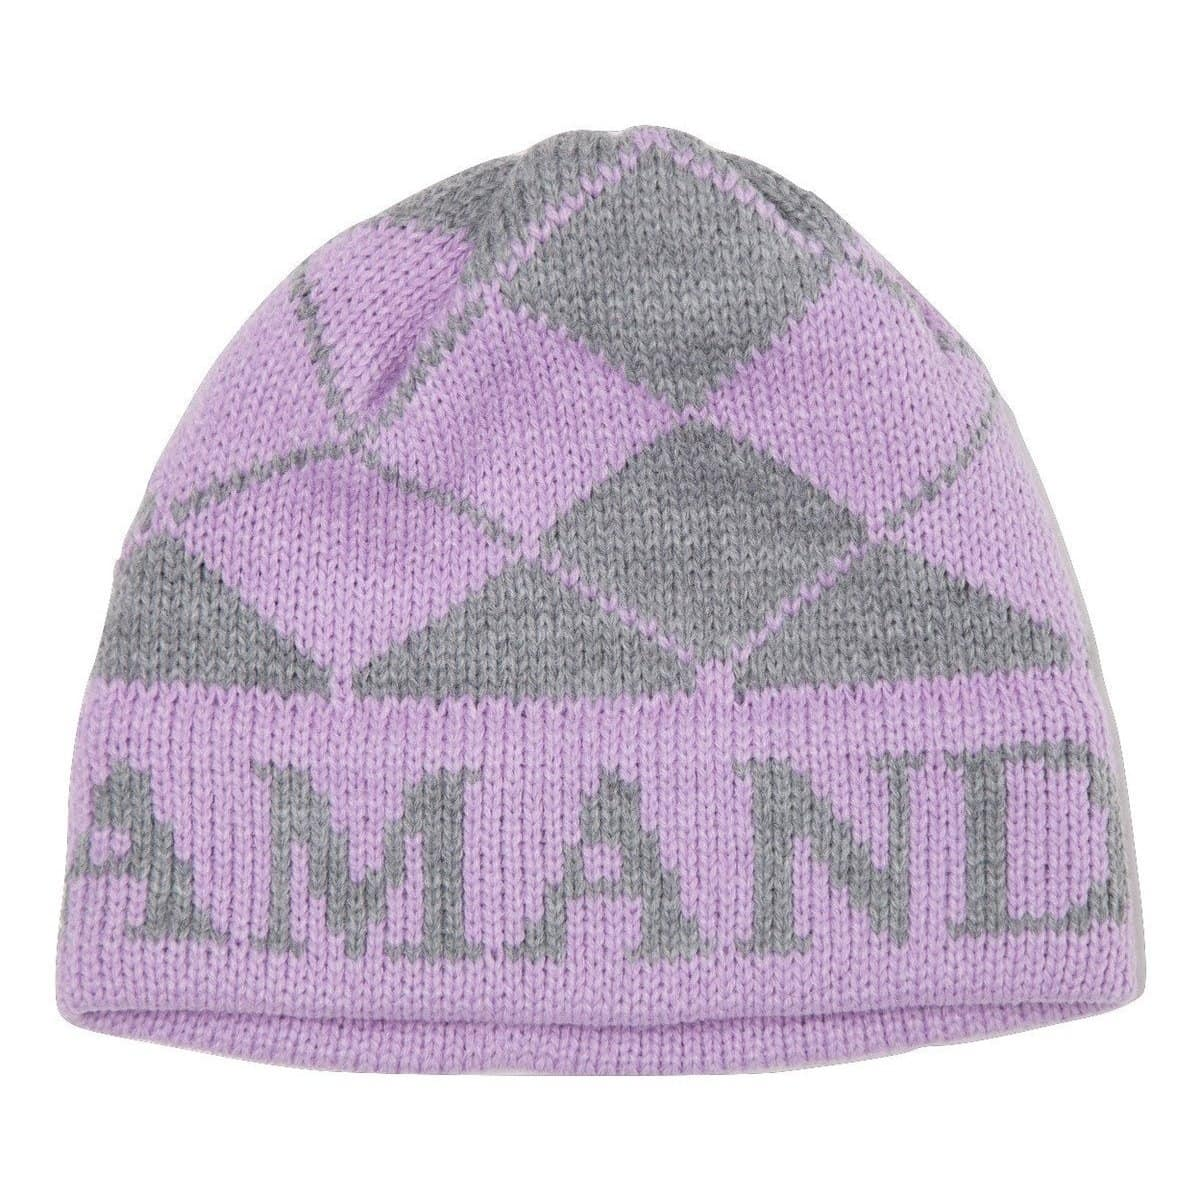 Argyle & Name Personalized Knit Hat-Hats-Jack and Jill Boutique